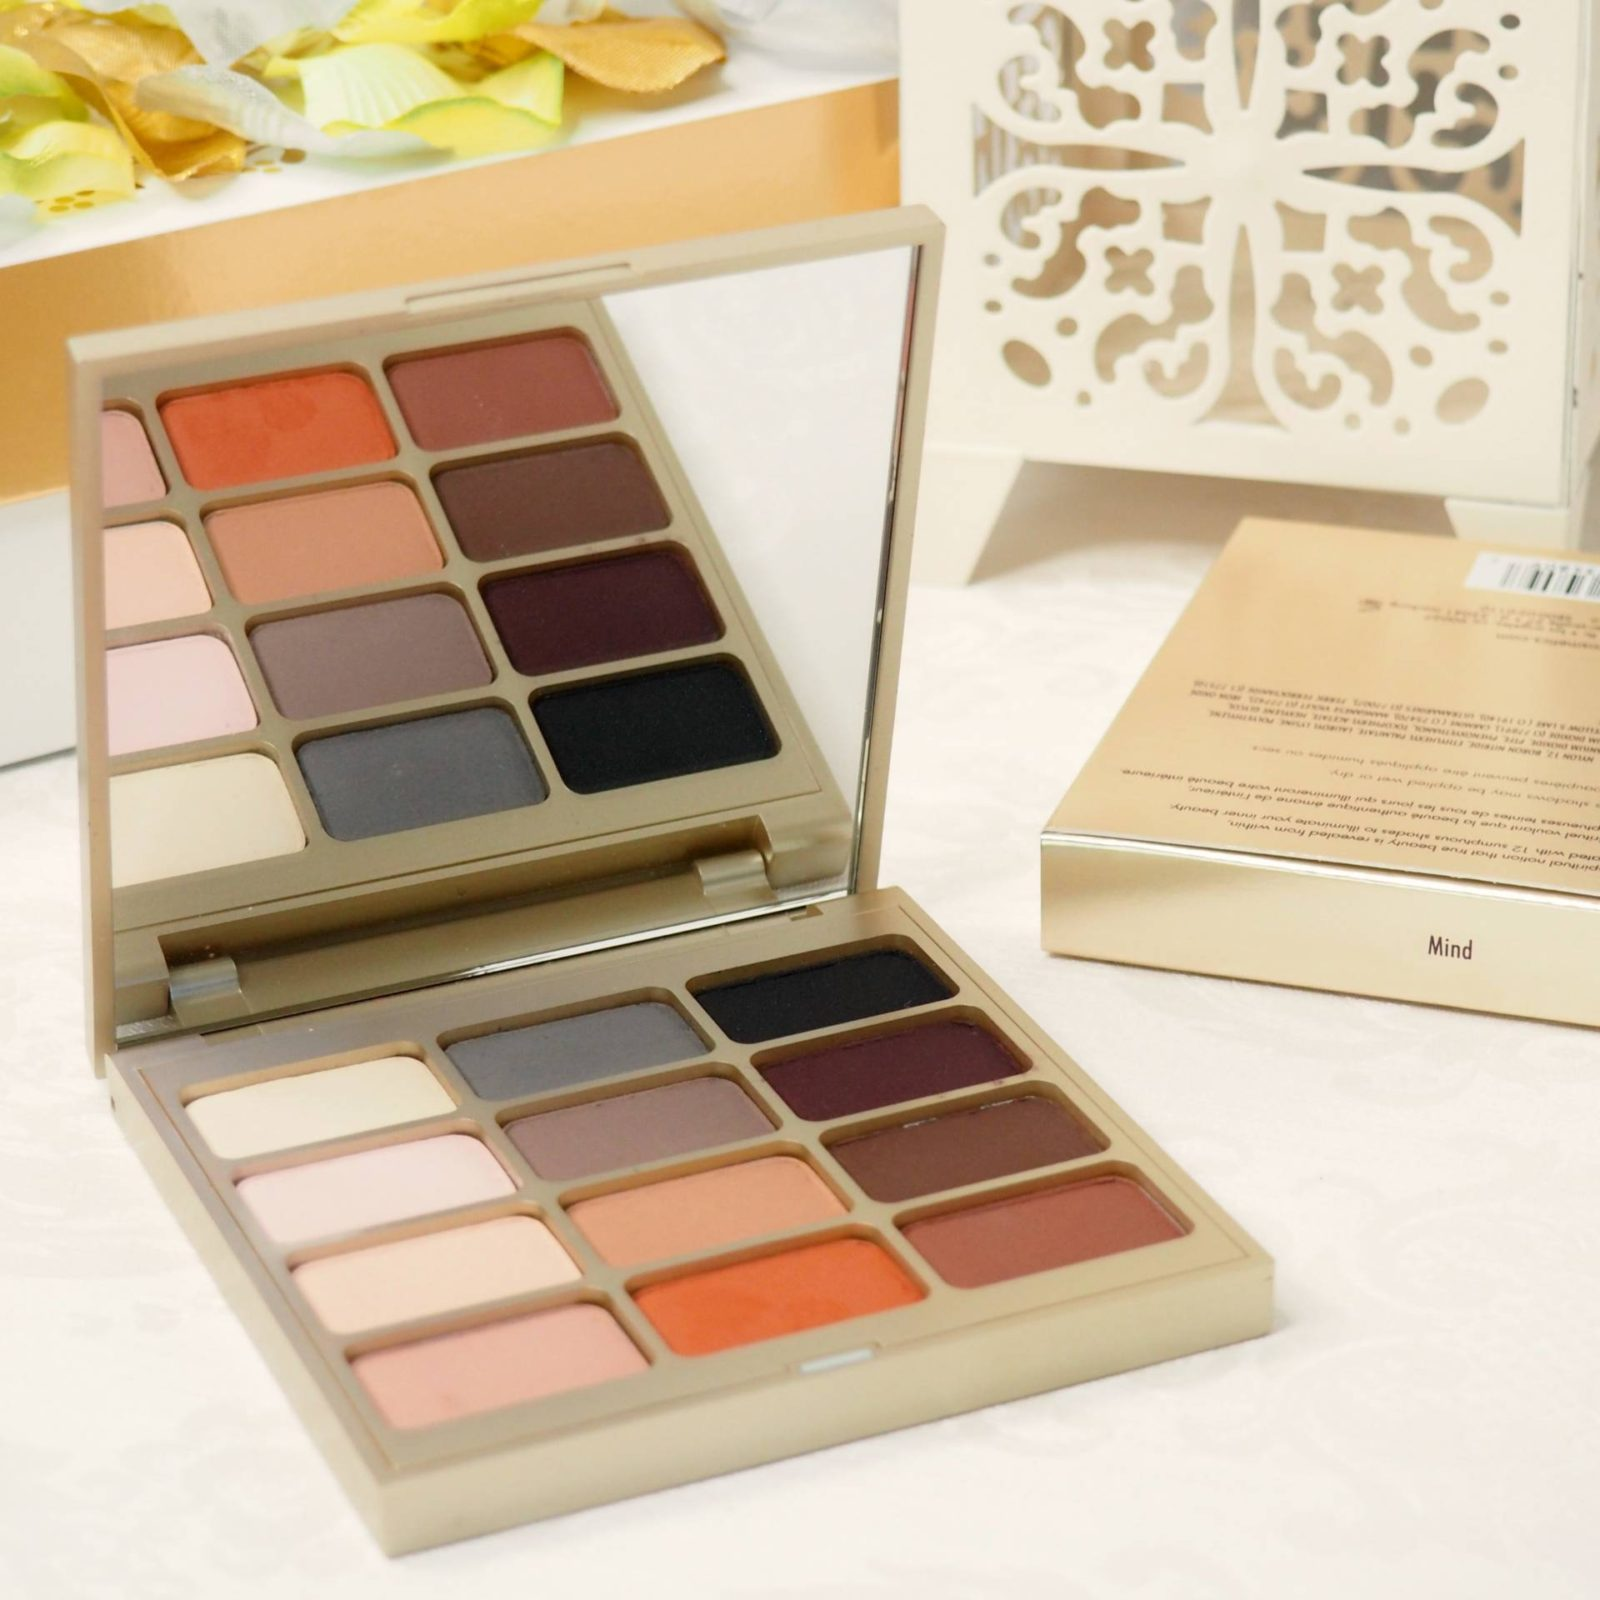 Stila Eyes Are The Window Palette - Mind House of Paper Doll